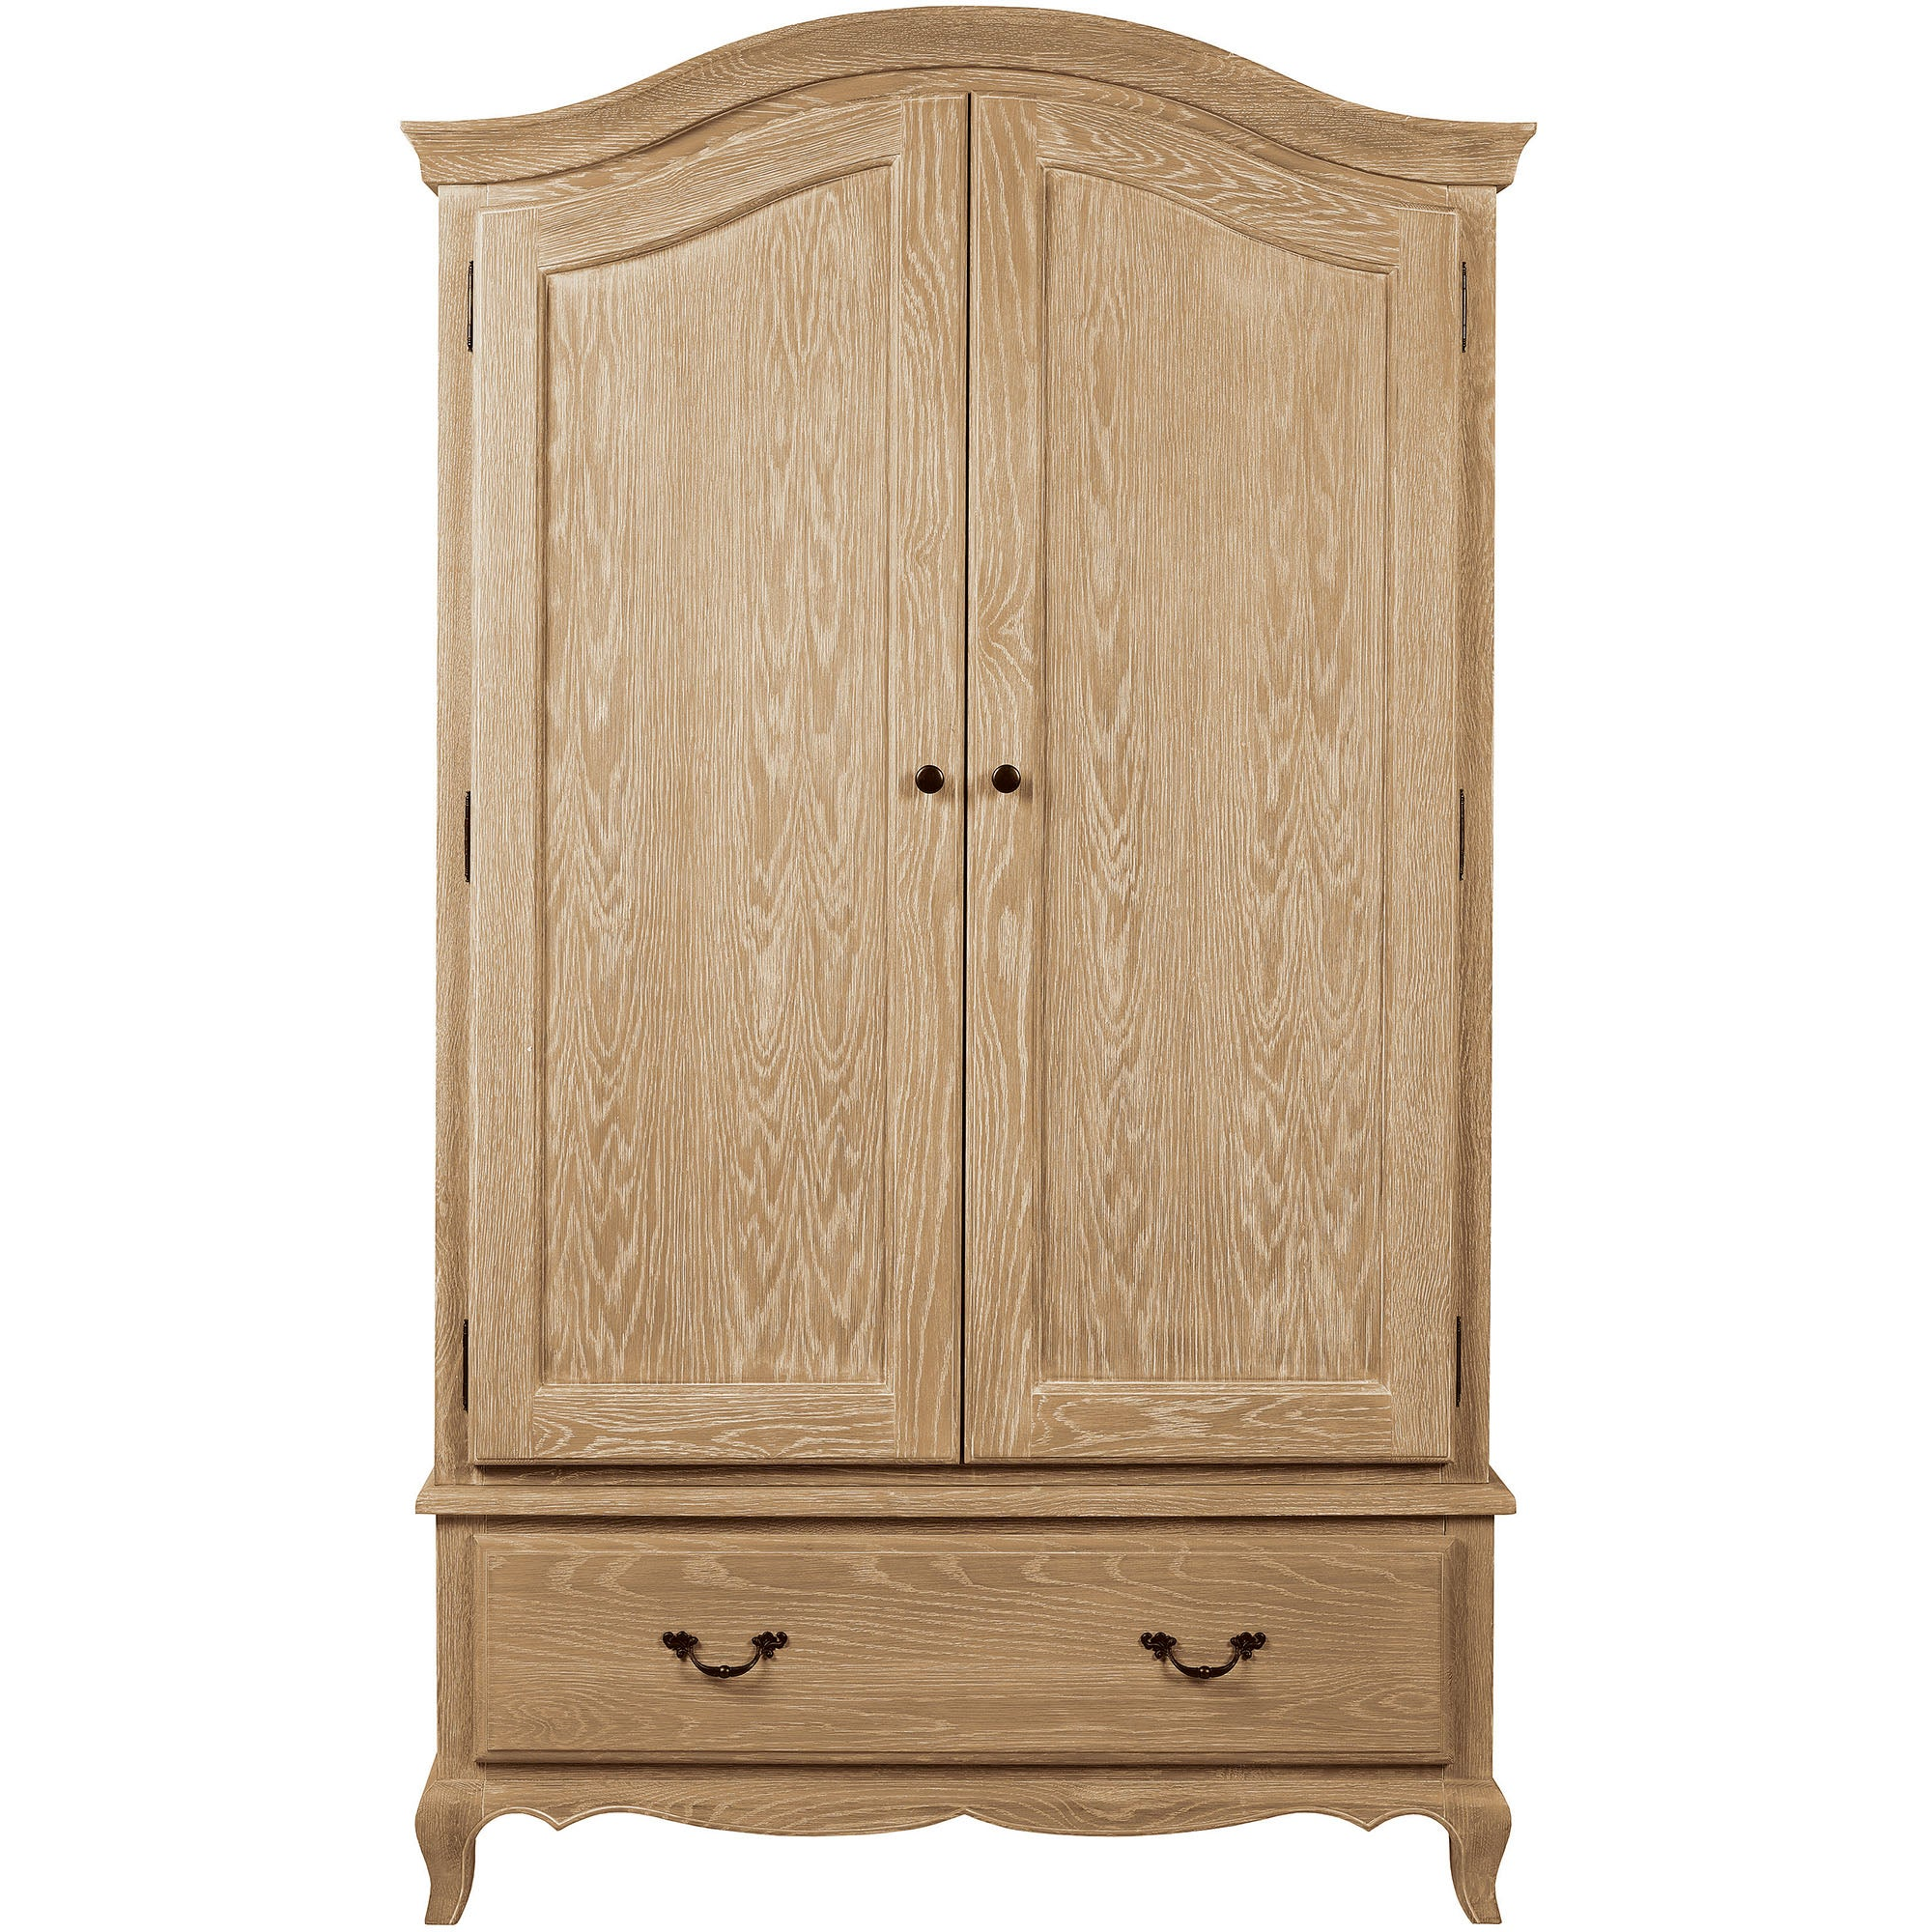 Photo of Annabelle natural oak double wardrobe light brown / natural